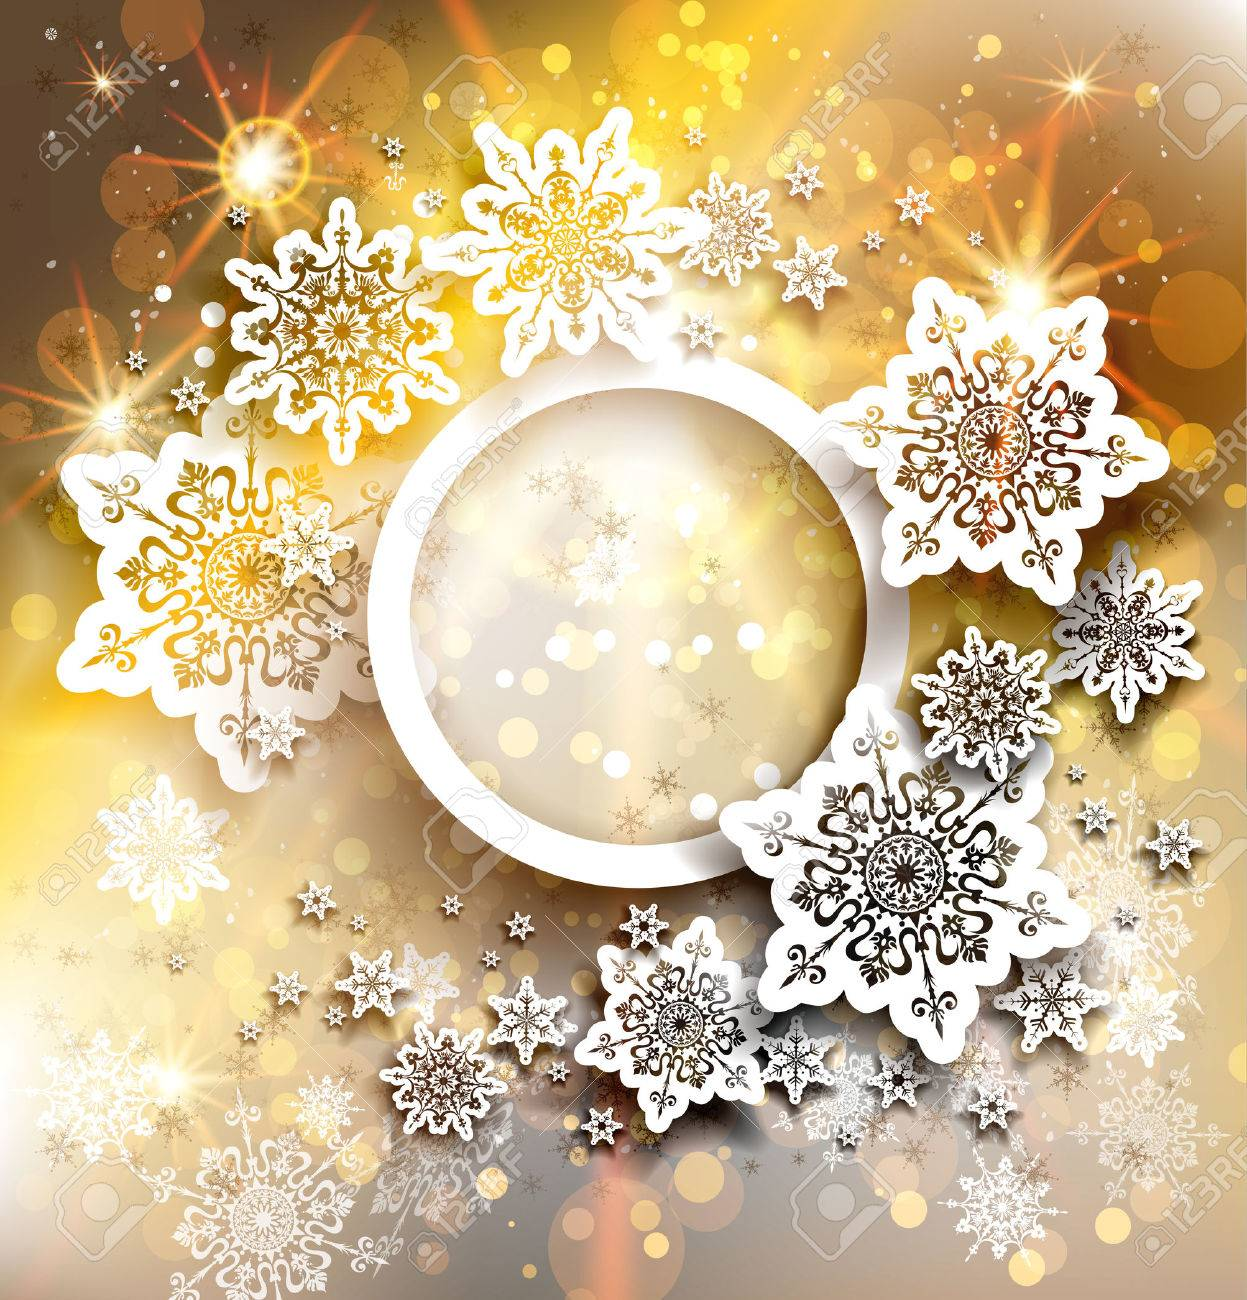 Gold christmas holiday background with place for text - 32148056